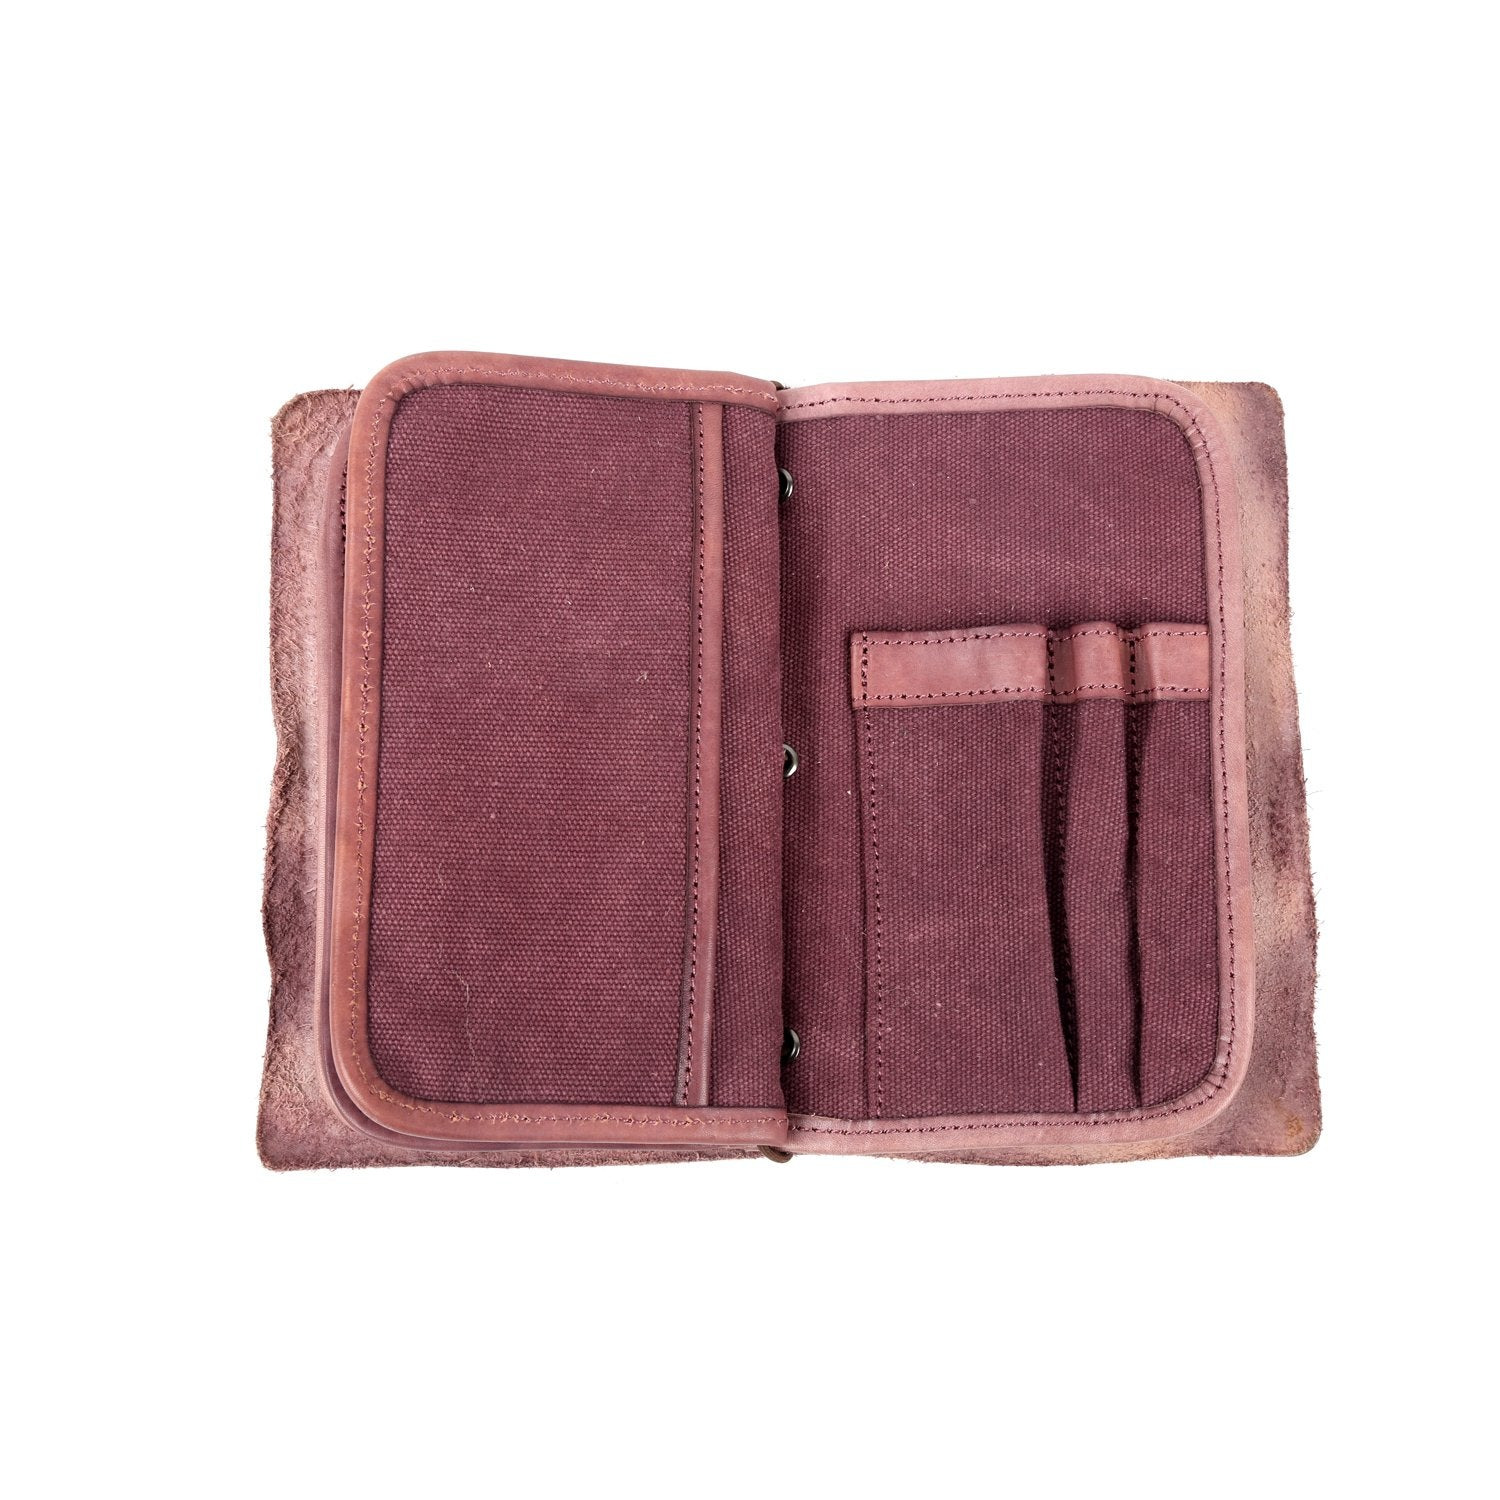 Nomad Leather Organizer